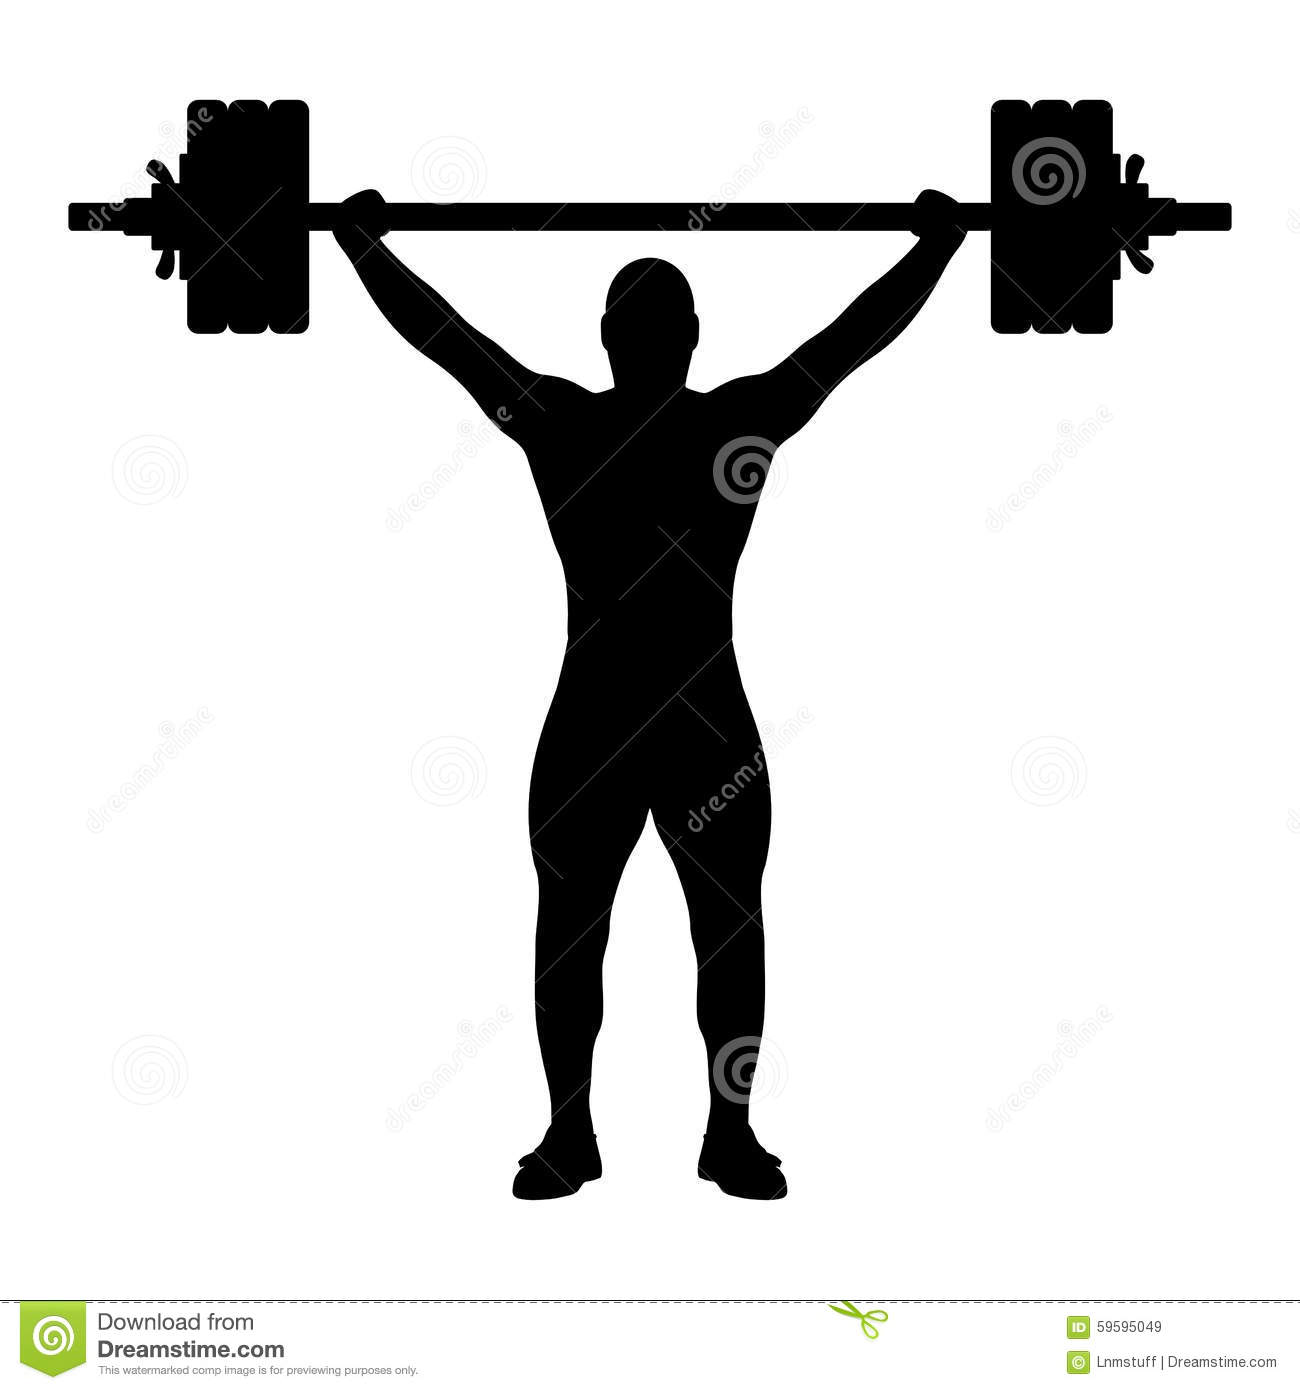 weight lifter silhouette